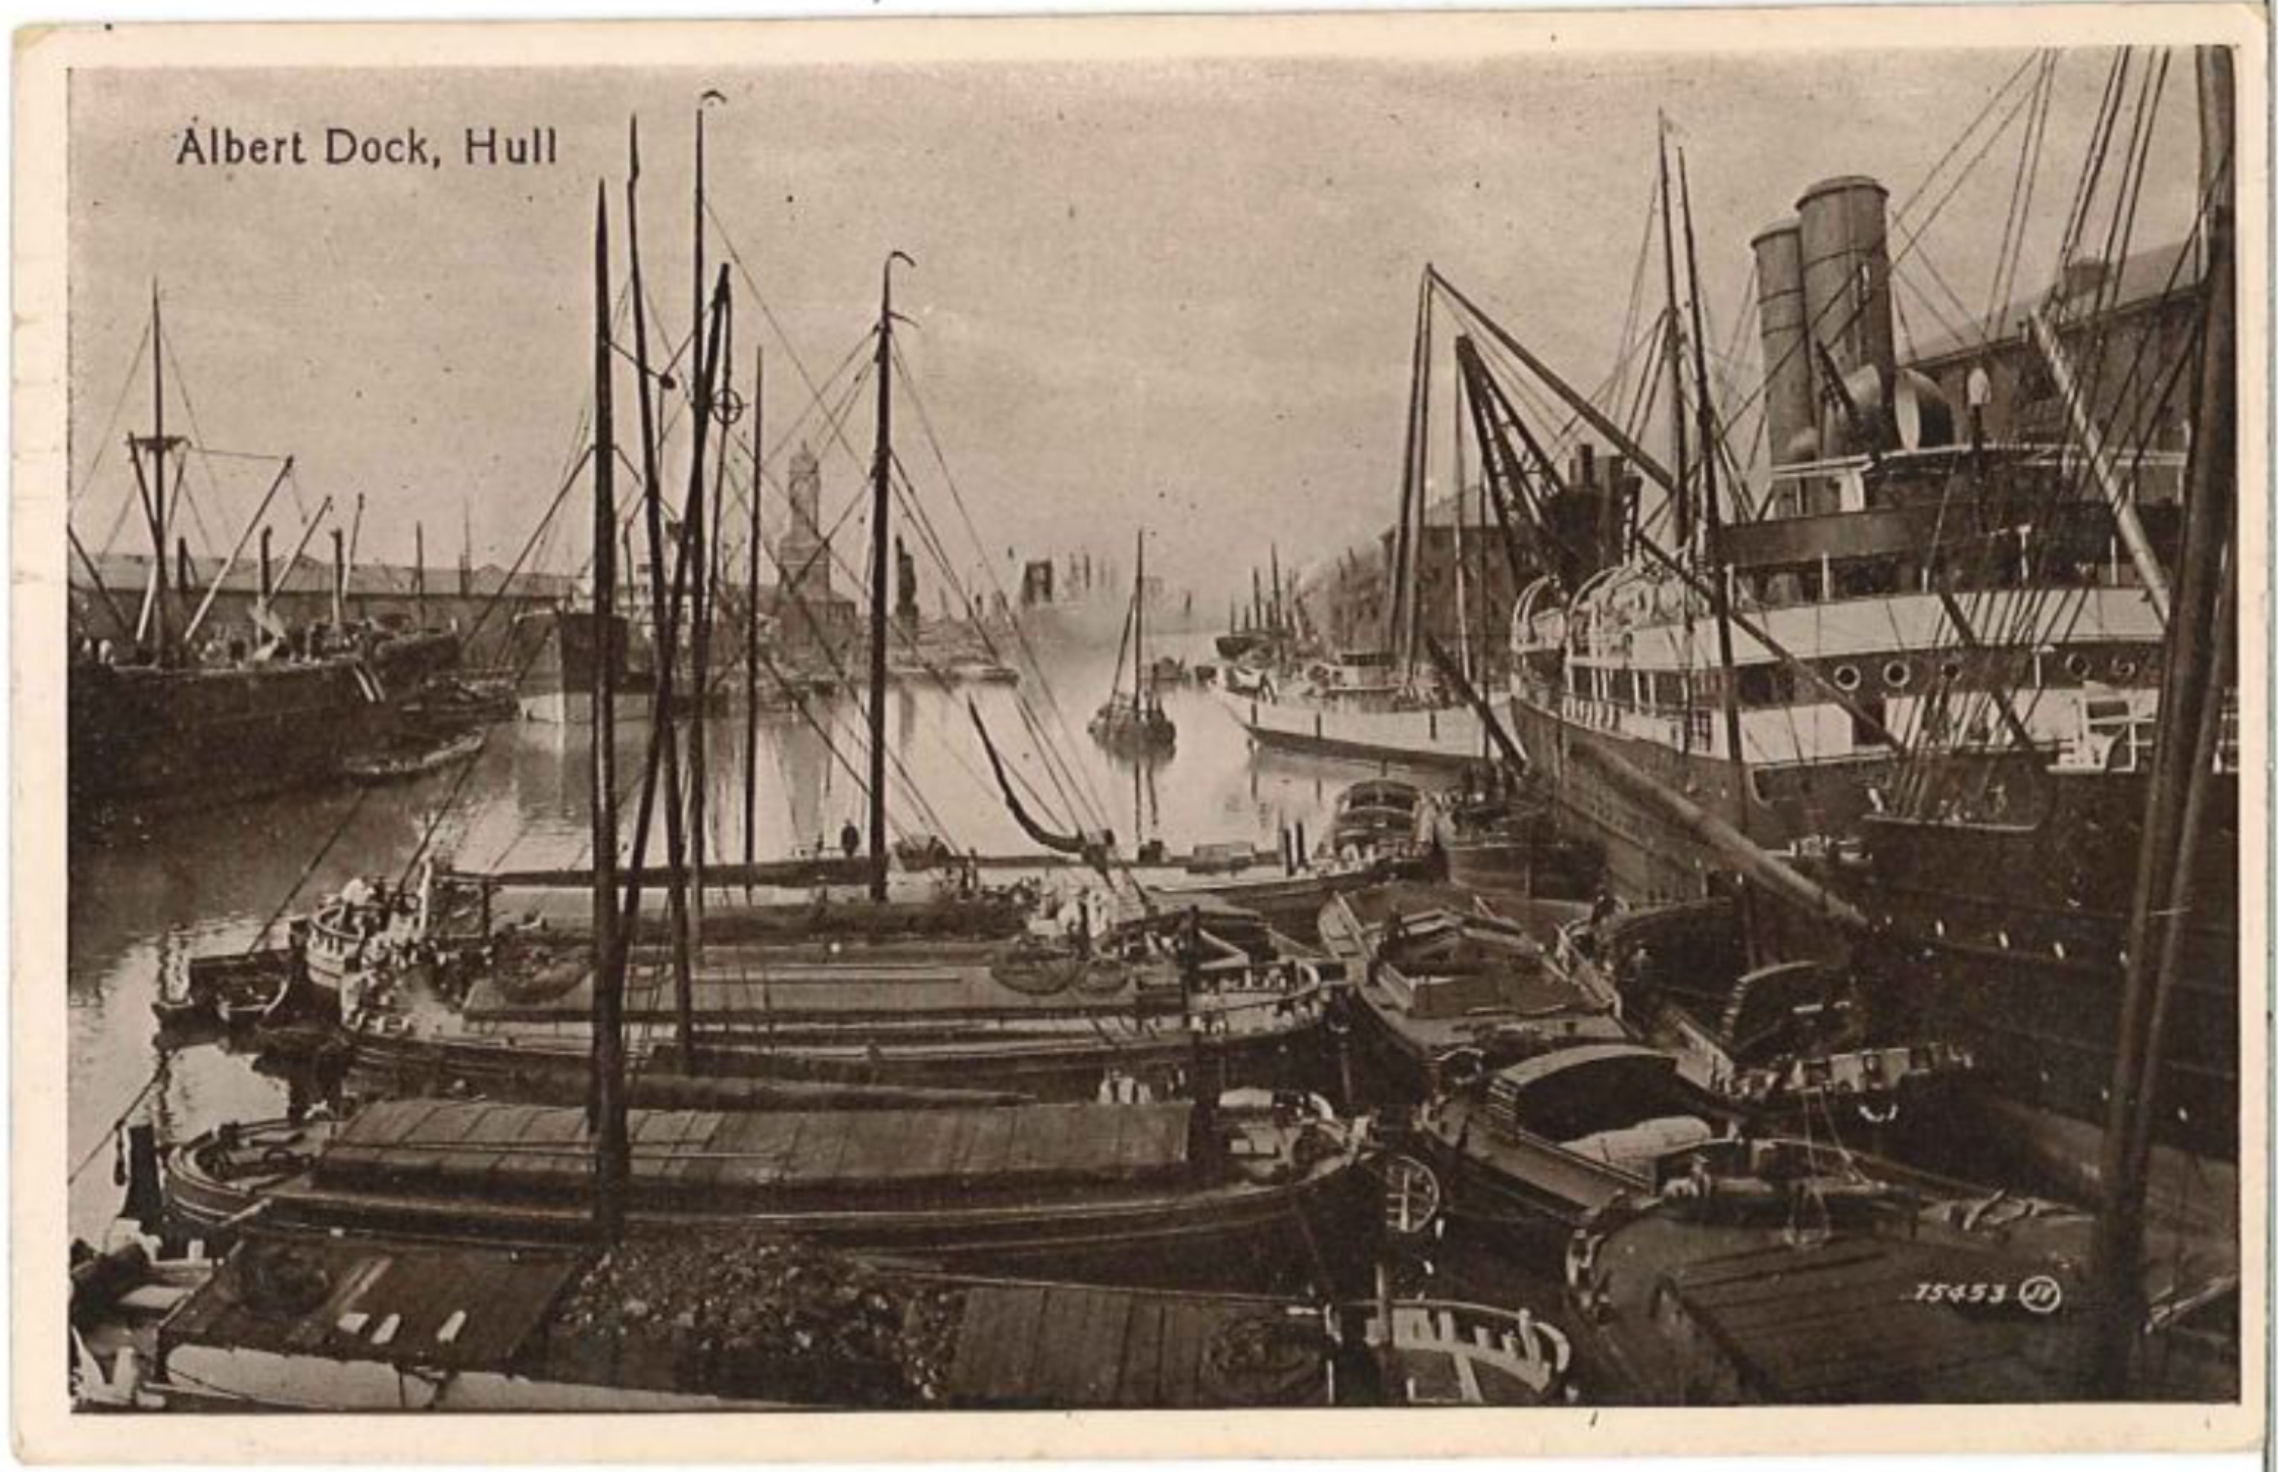 Albert dock, Hull.